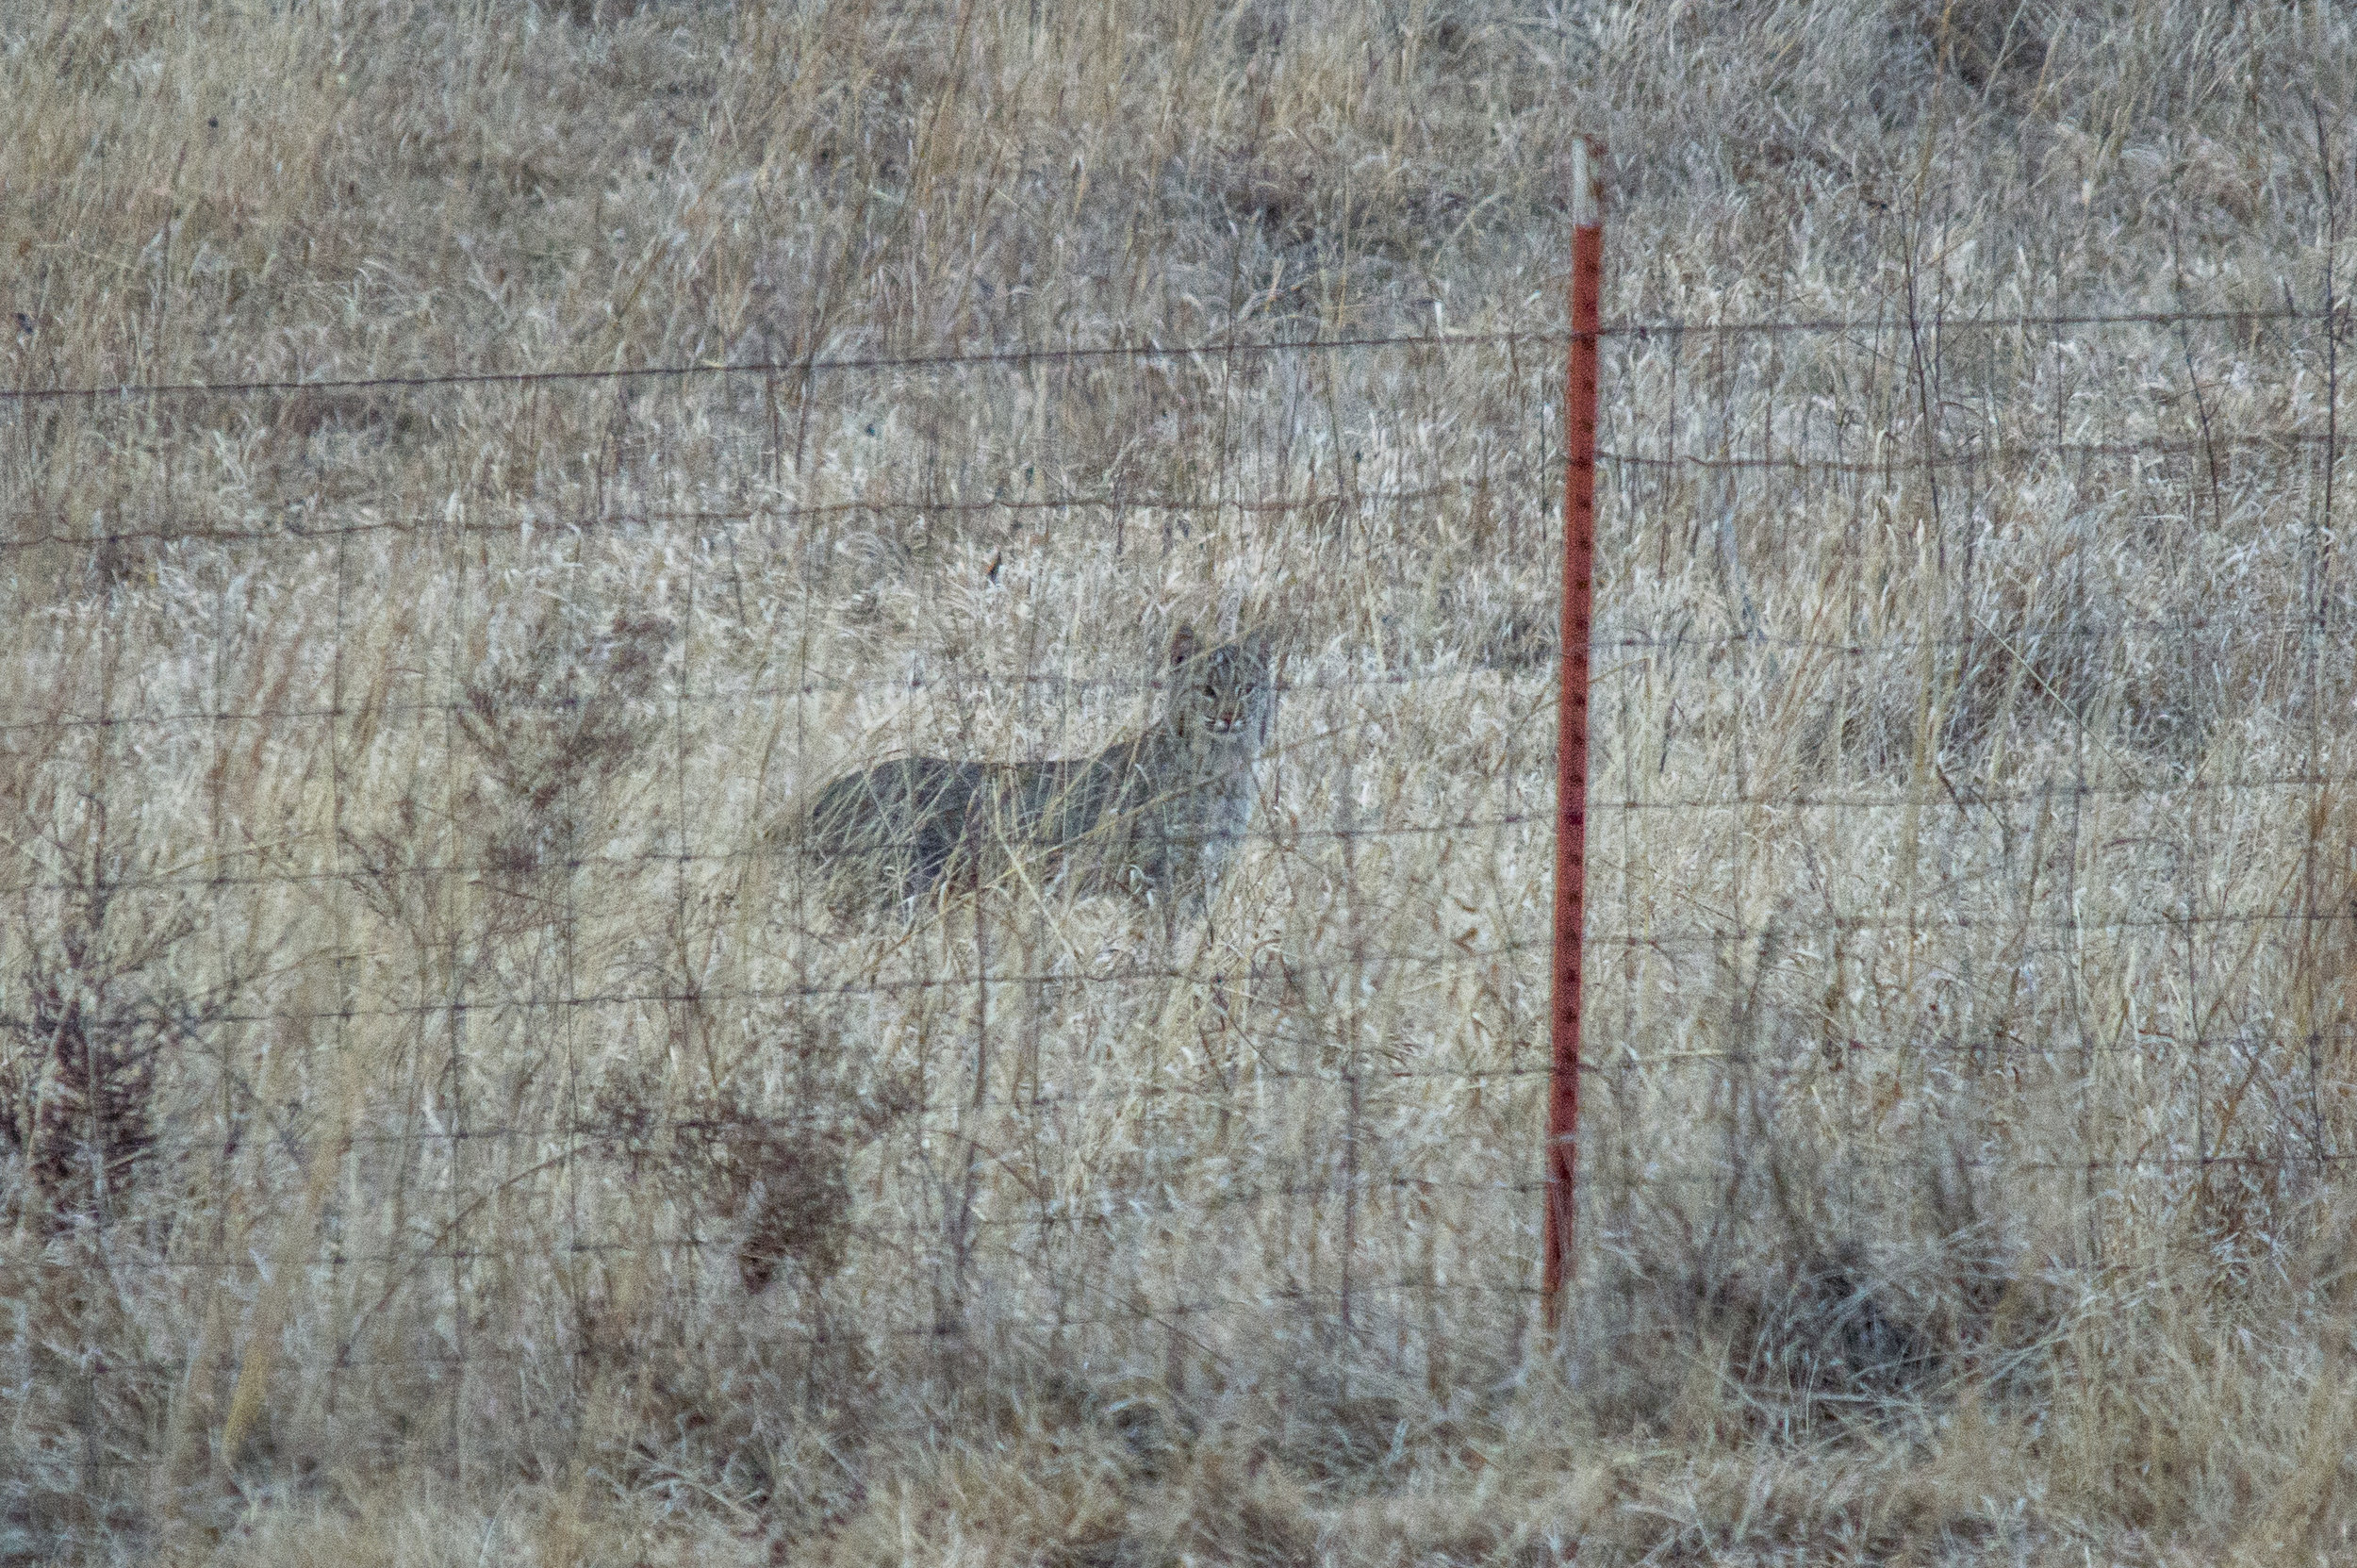 """The Bobcat isn't technically a """"Big Cat,"""" but is included for the purposes of bringing recognition to animals that need protection on this World Wildlife Day. It is also the only """"Big Cat"""" that I have seen in the wild and been able to capture an image of. I was so excited that my camera settings were still set for flying birds (fast shutter and high ISO) and the image was very shaky. I wish I would have thought to get the correct setting to get a good image, but I'm happy with what I got!  (Prairie Center Kansas)"""